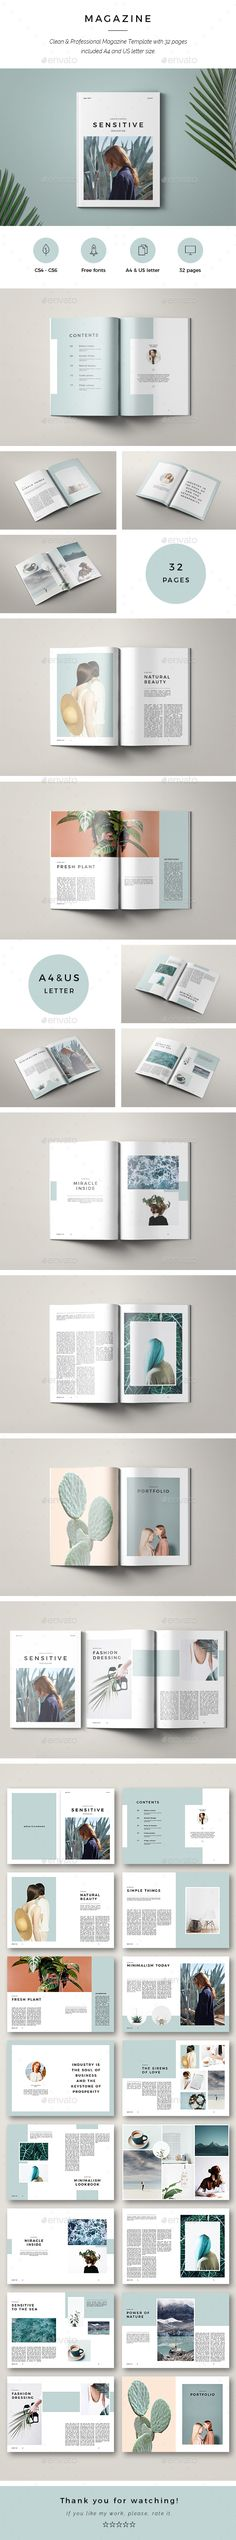 Sensitive Minimal Magazine - Magazines Print Templates Download here : https://graphicriver.net/item/sensitive-minimal-magazine/19762422?s_rank=67&ref=Al-fatih #magazine #magazine template #magazine layout #template #premium design #design grafis #layout #creative design #indesign magazine